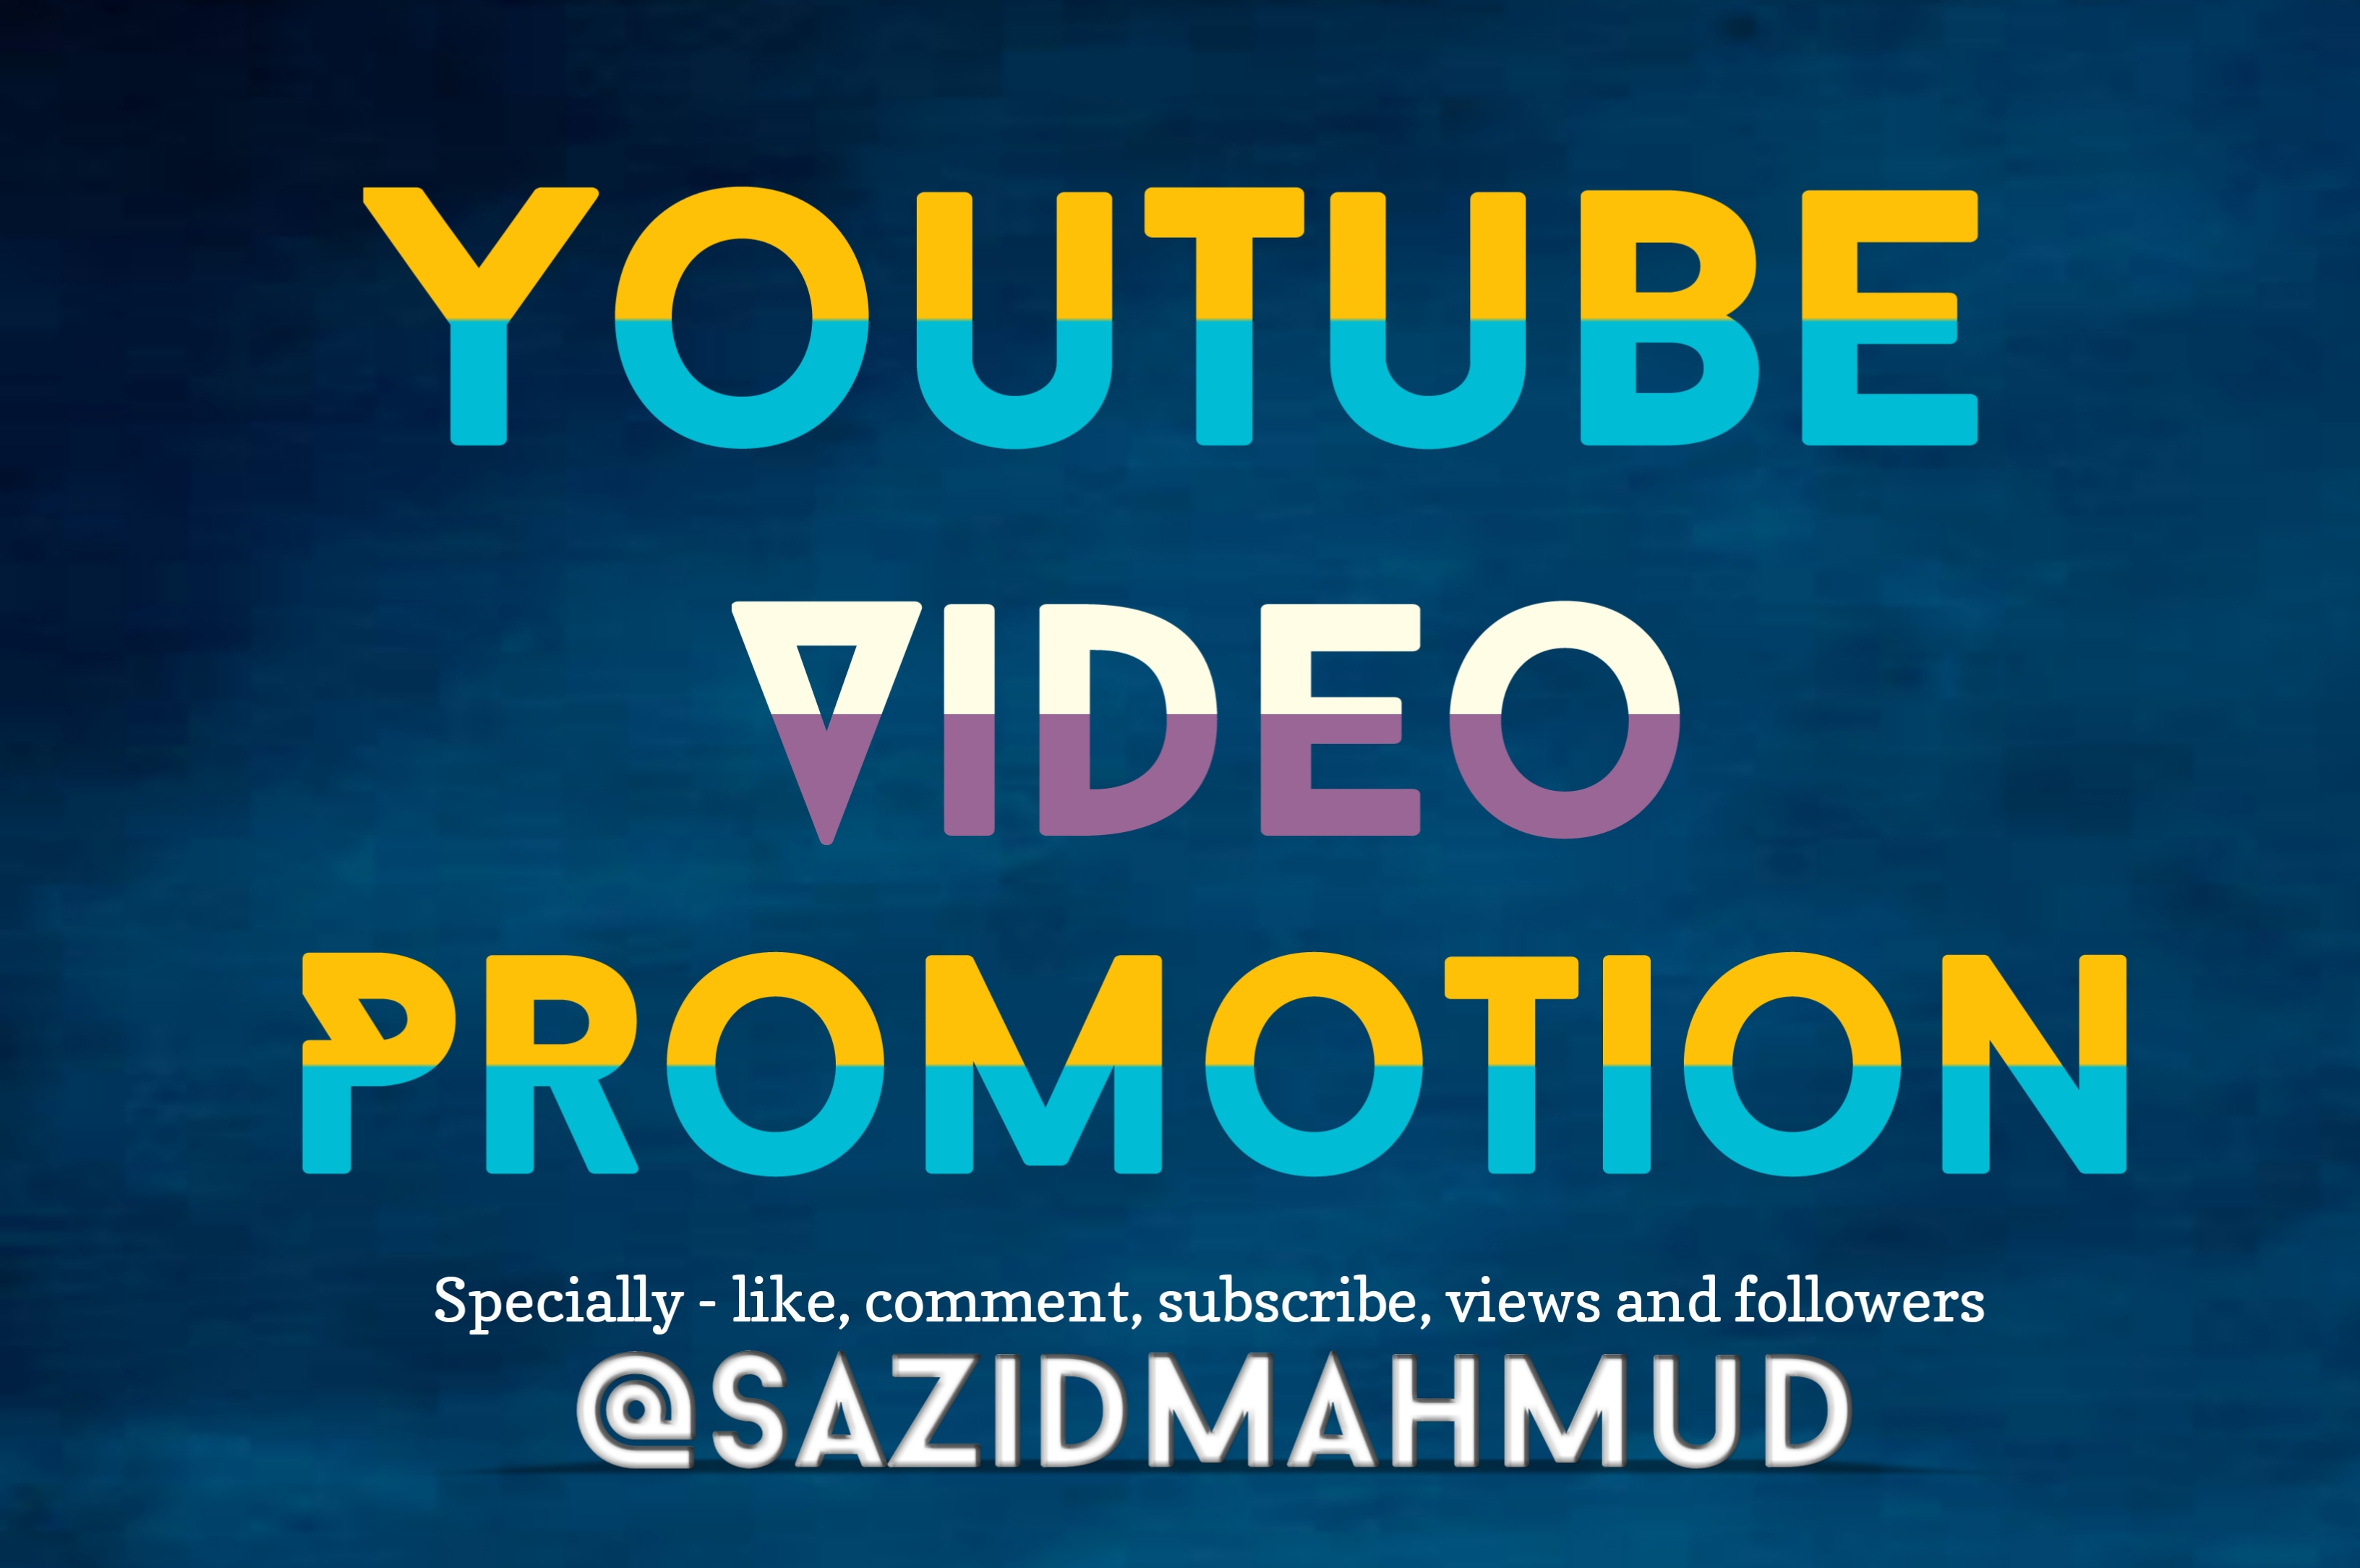 YouTube video promotion and Social Media expert